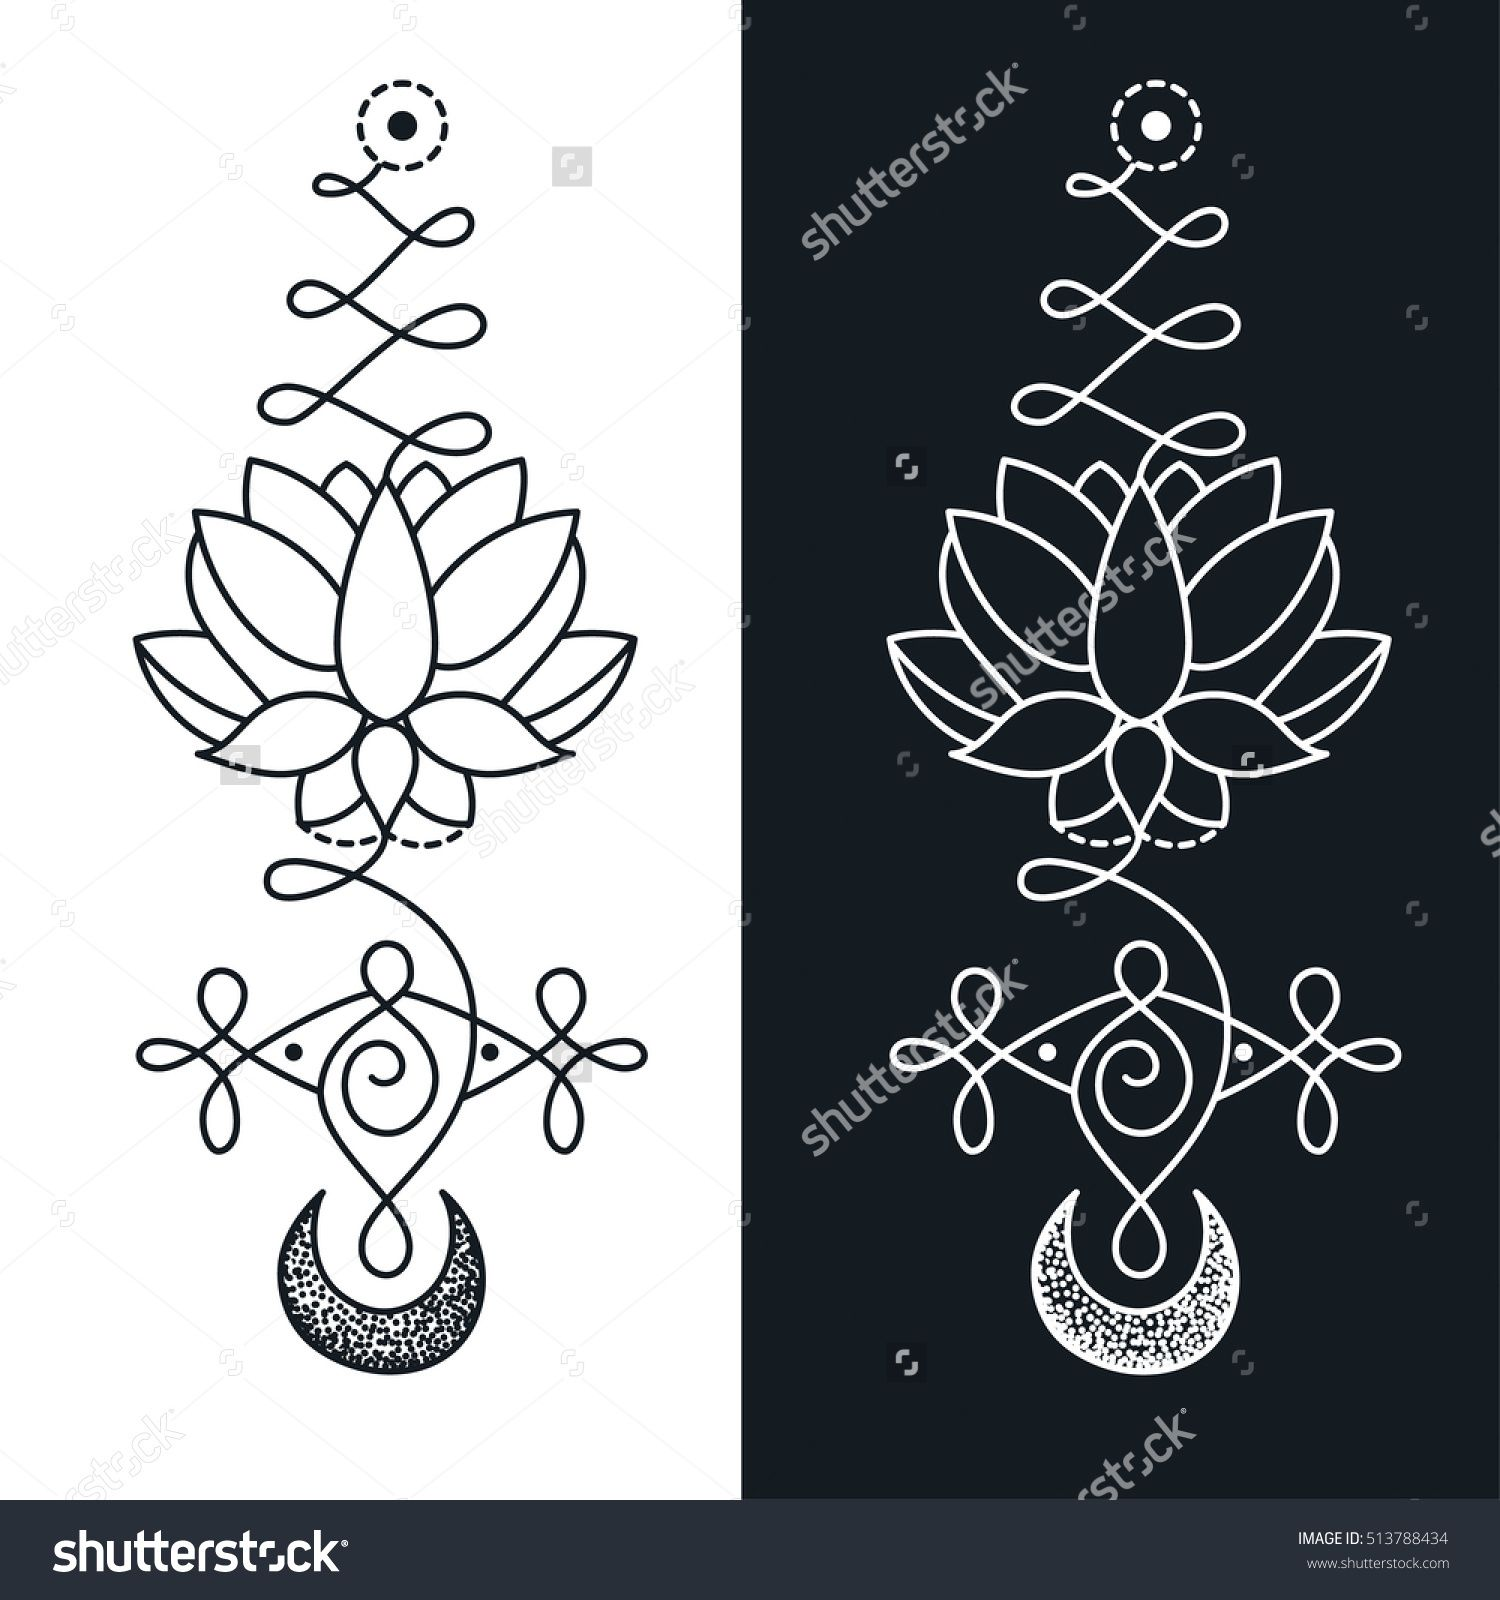 Image result for unalome tattoo pinterest unalome search unalome lotus sacred symbol buy this stock vector on shutterstock find other images buycottarizona Choice Image